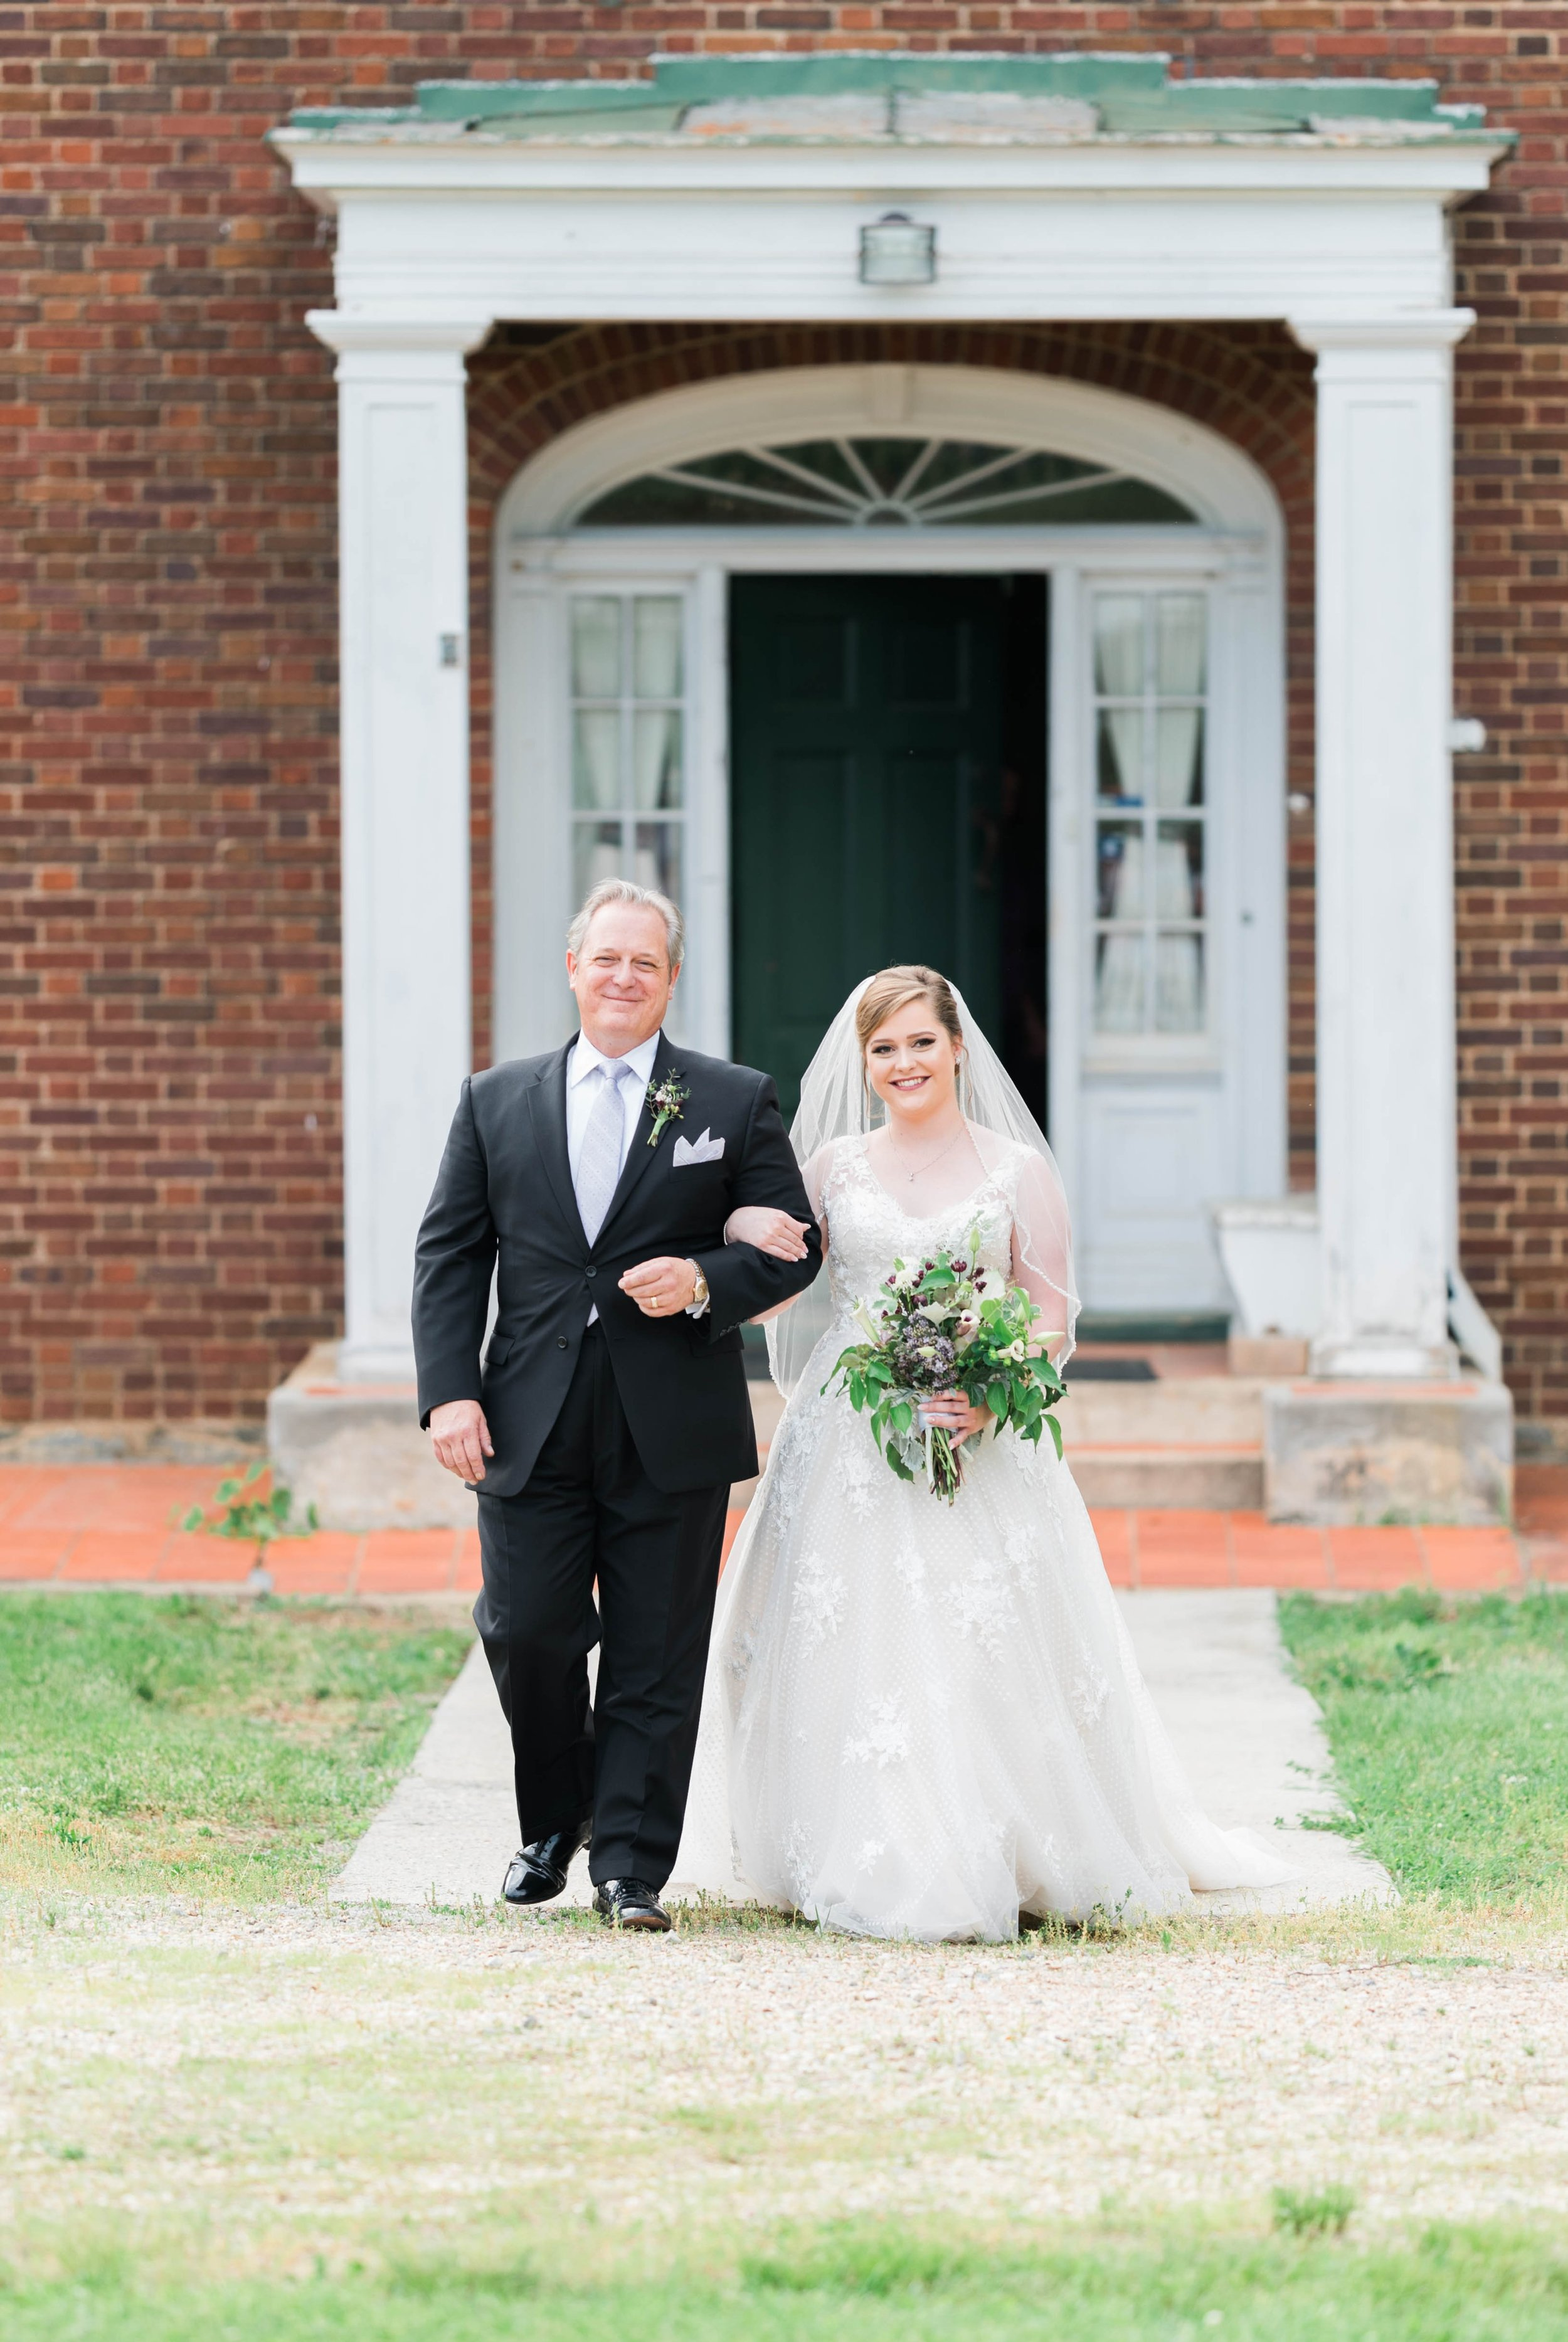 Jillian+Abi_OakridgeEstate_Wedding_VirginiaWeddingPhotographer_SpringWedding 49.jpg